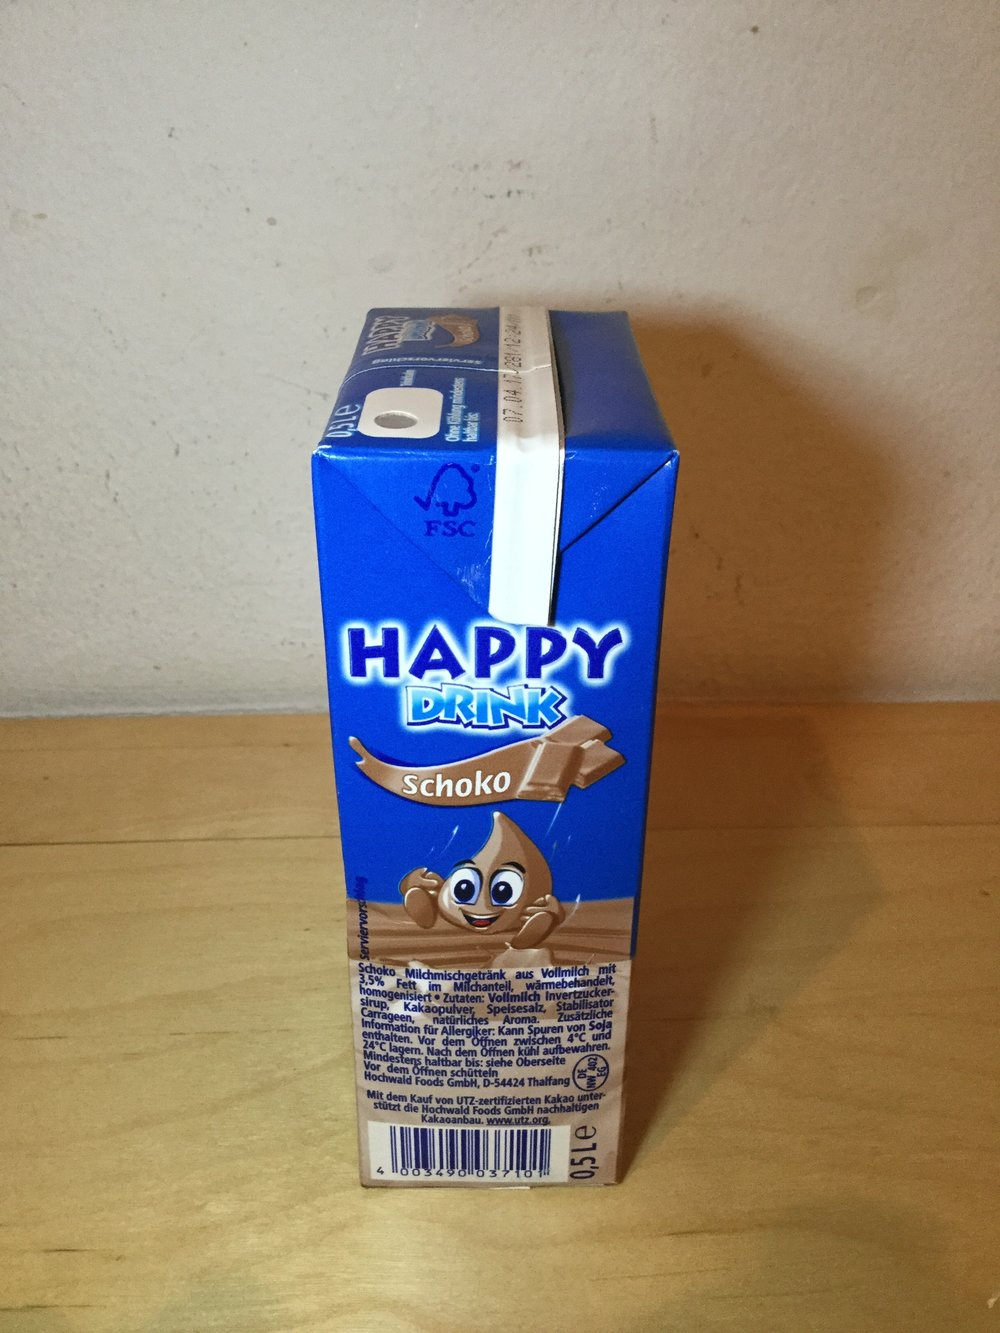 Happy Drink Schoko Side 2